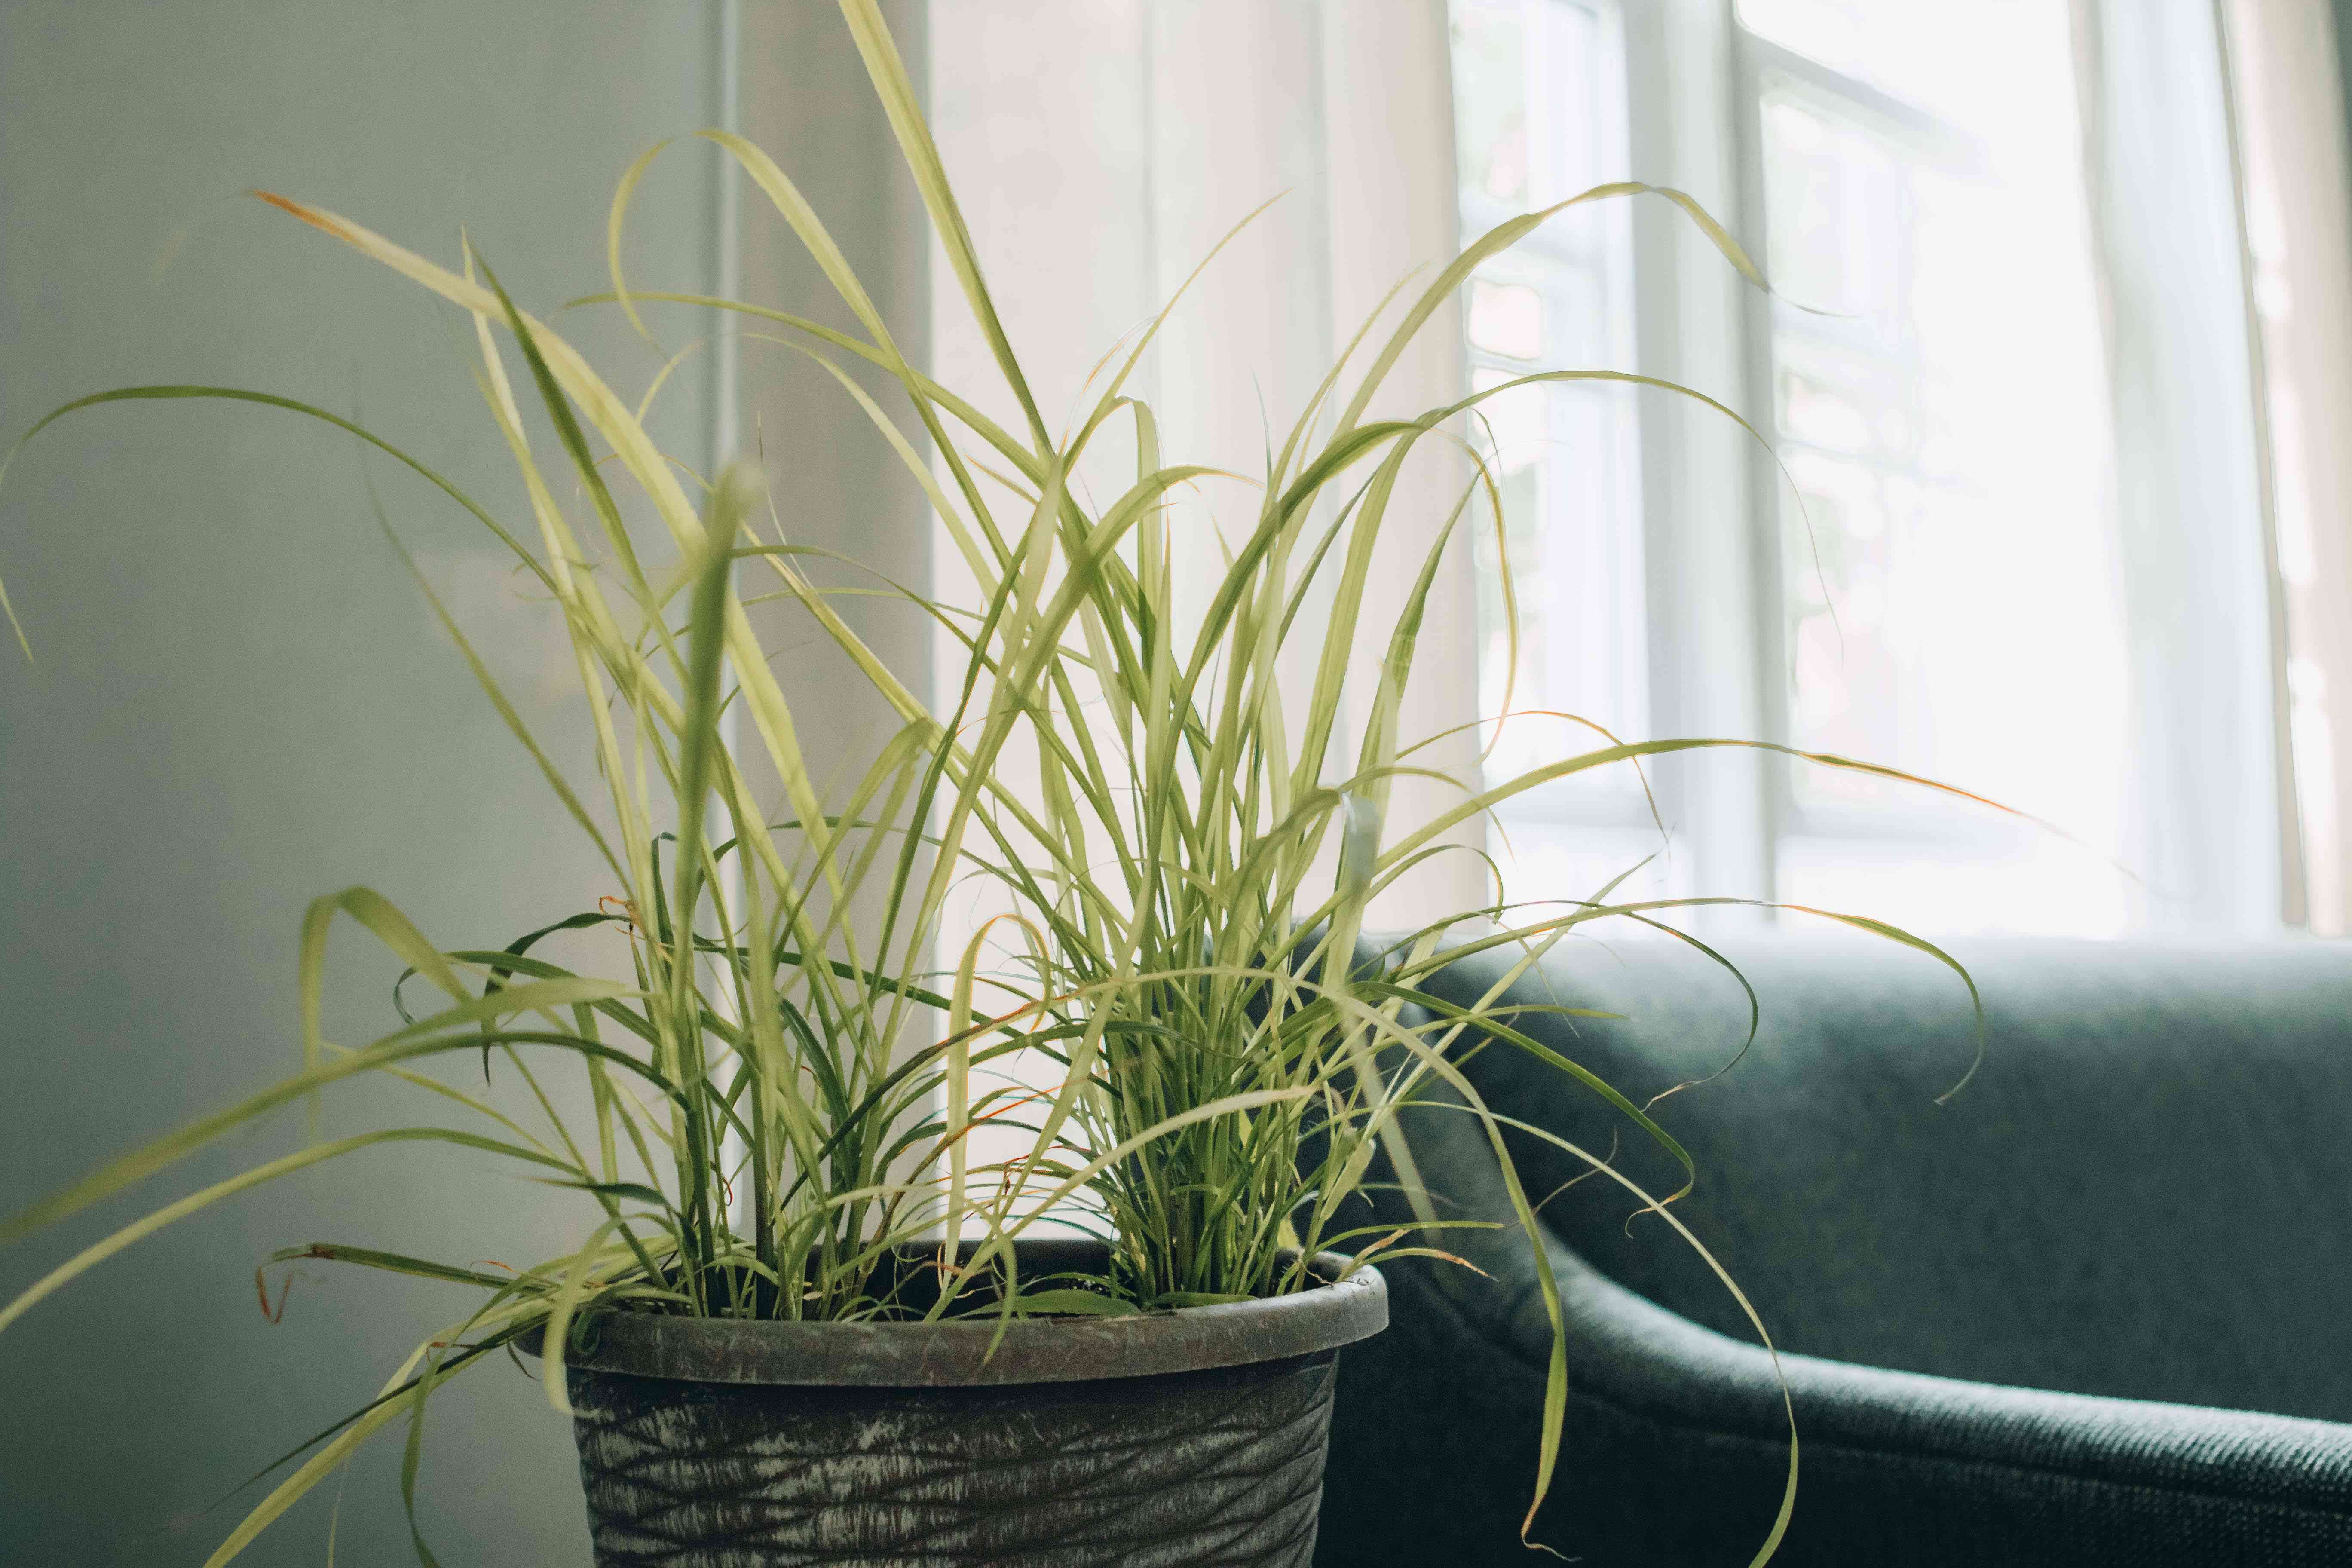 lemongrass in potted container with green couch and open window in background